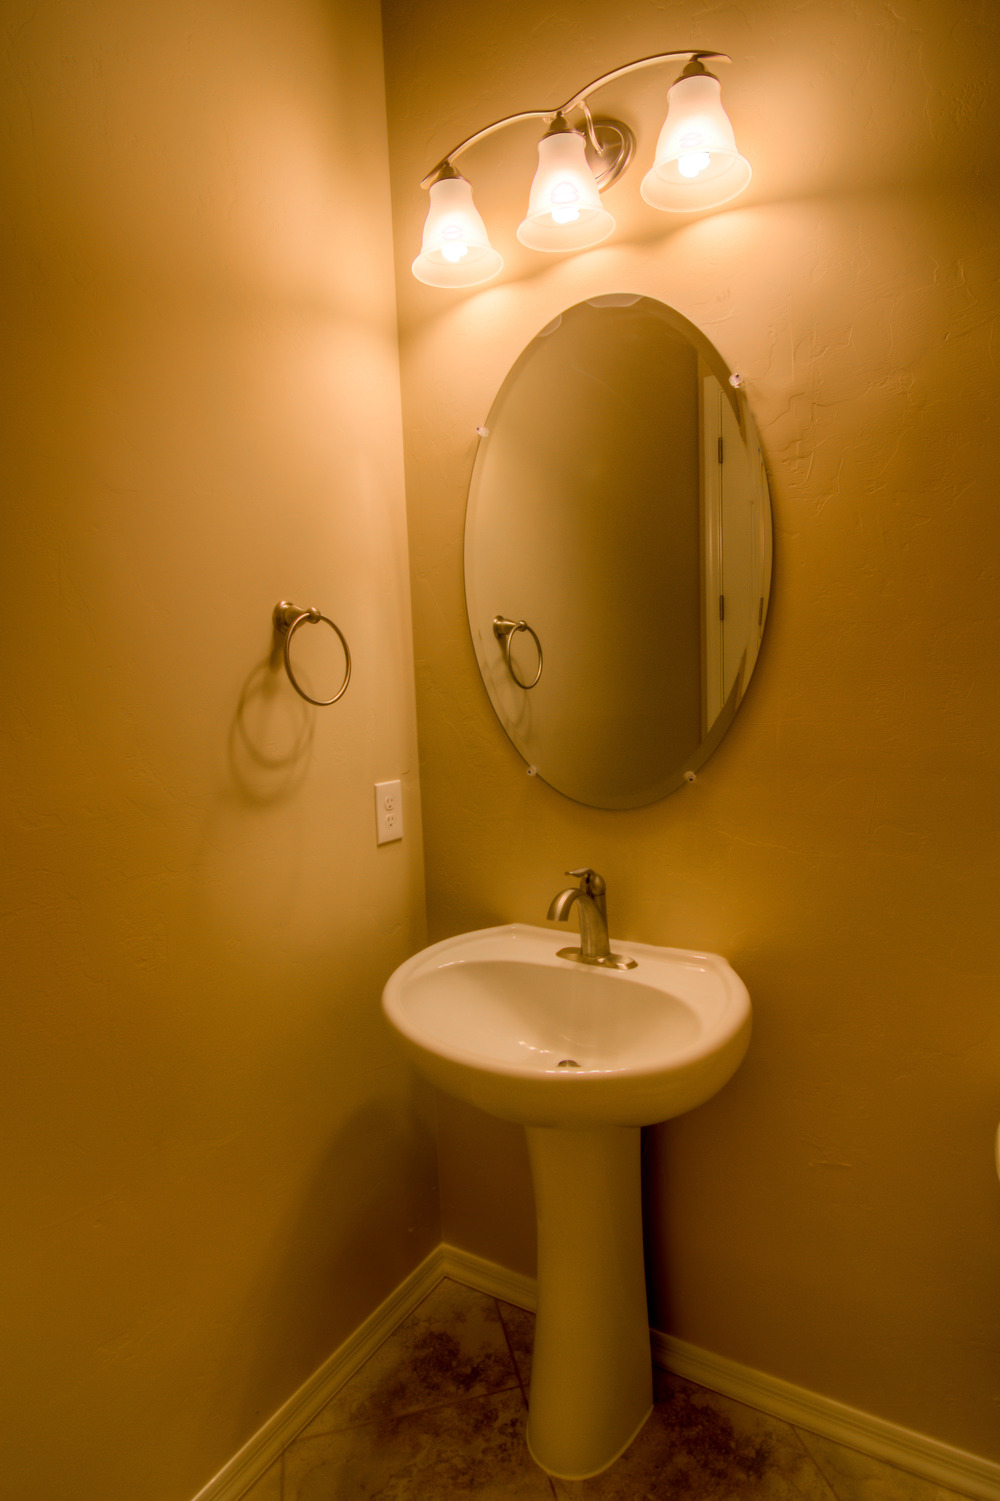 24 Bathroom 1.jpg